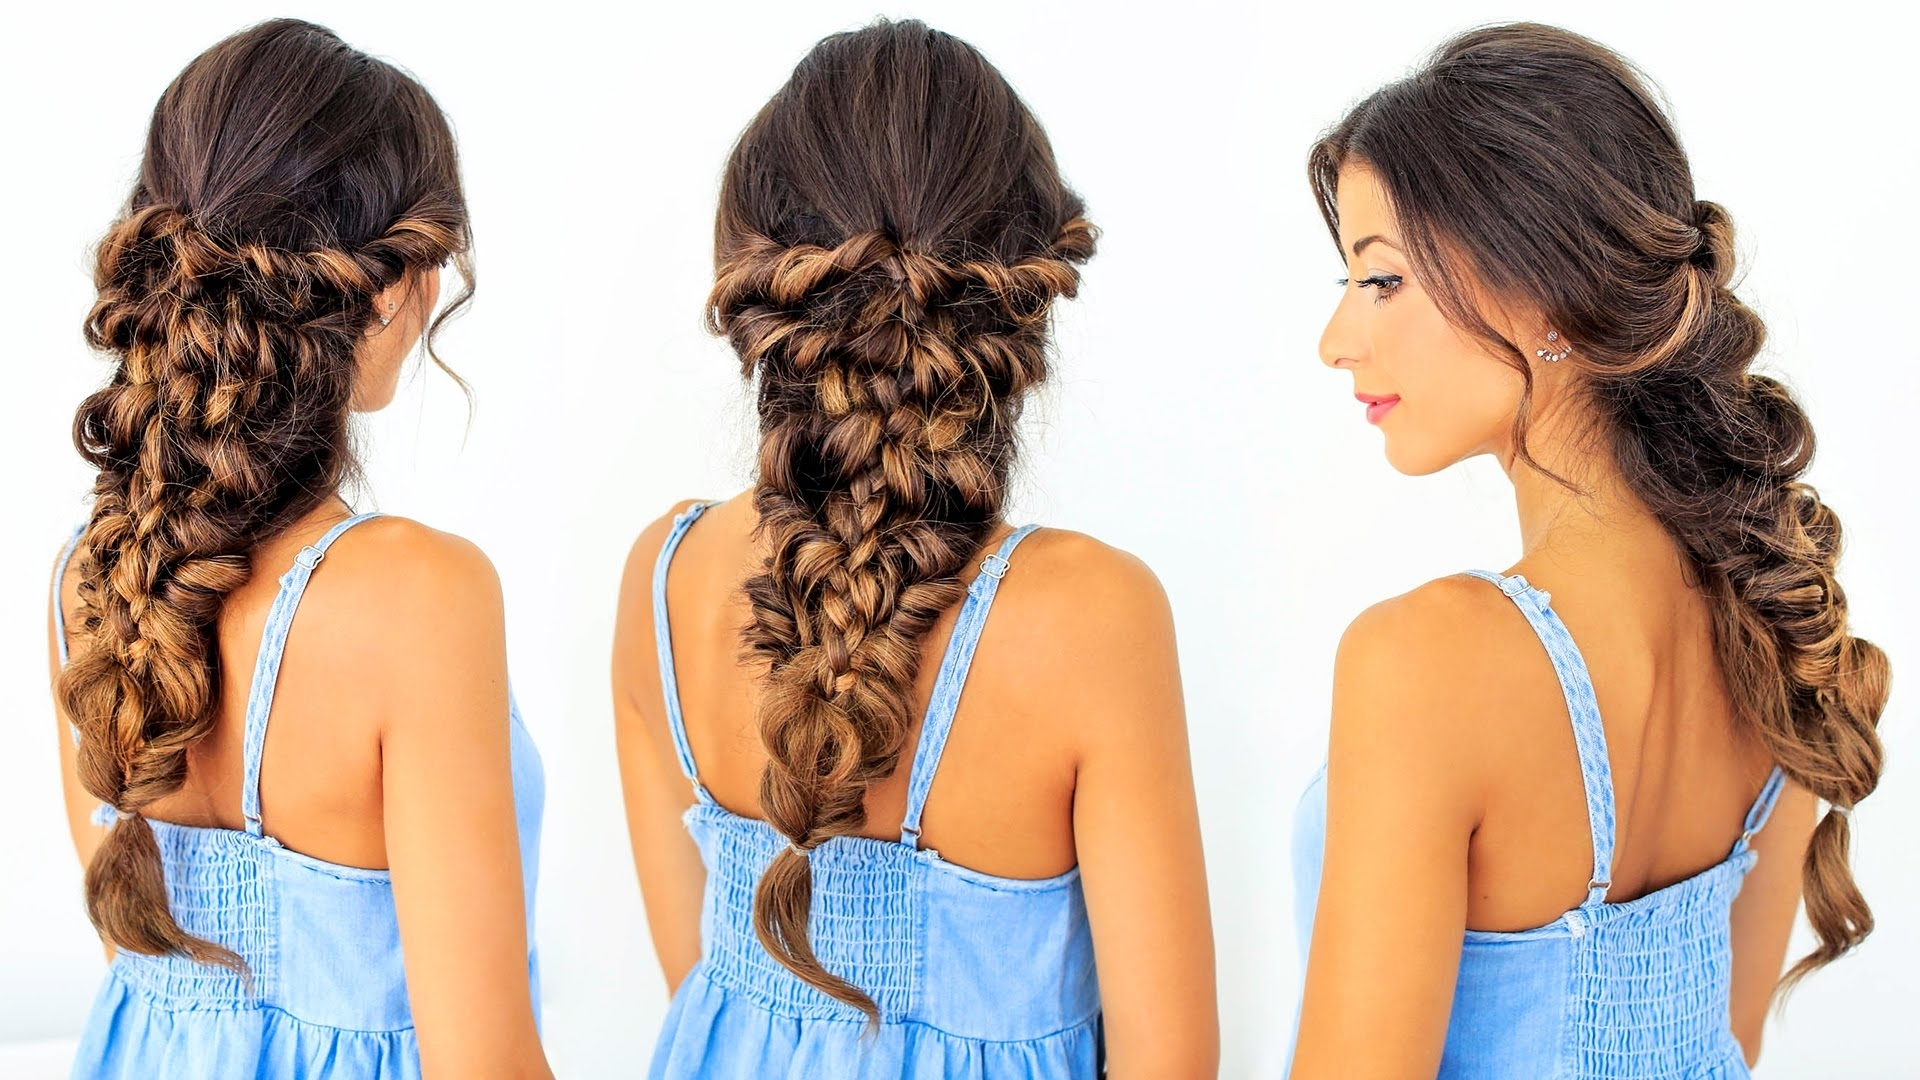 Most Up To Date Mermaid Braid Hairstyles Intended For How To: Mermaid Braid Hair Tutorial (View 14 of 15)